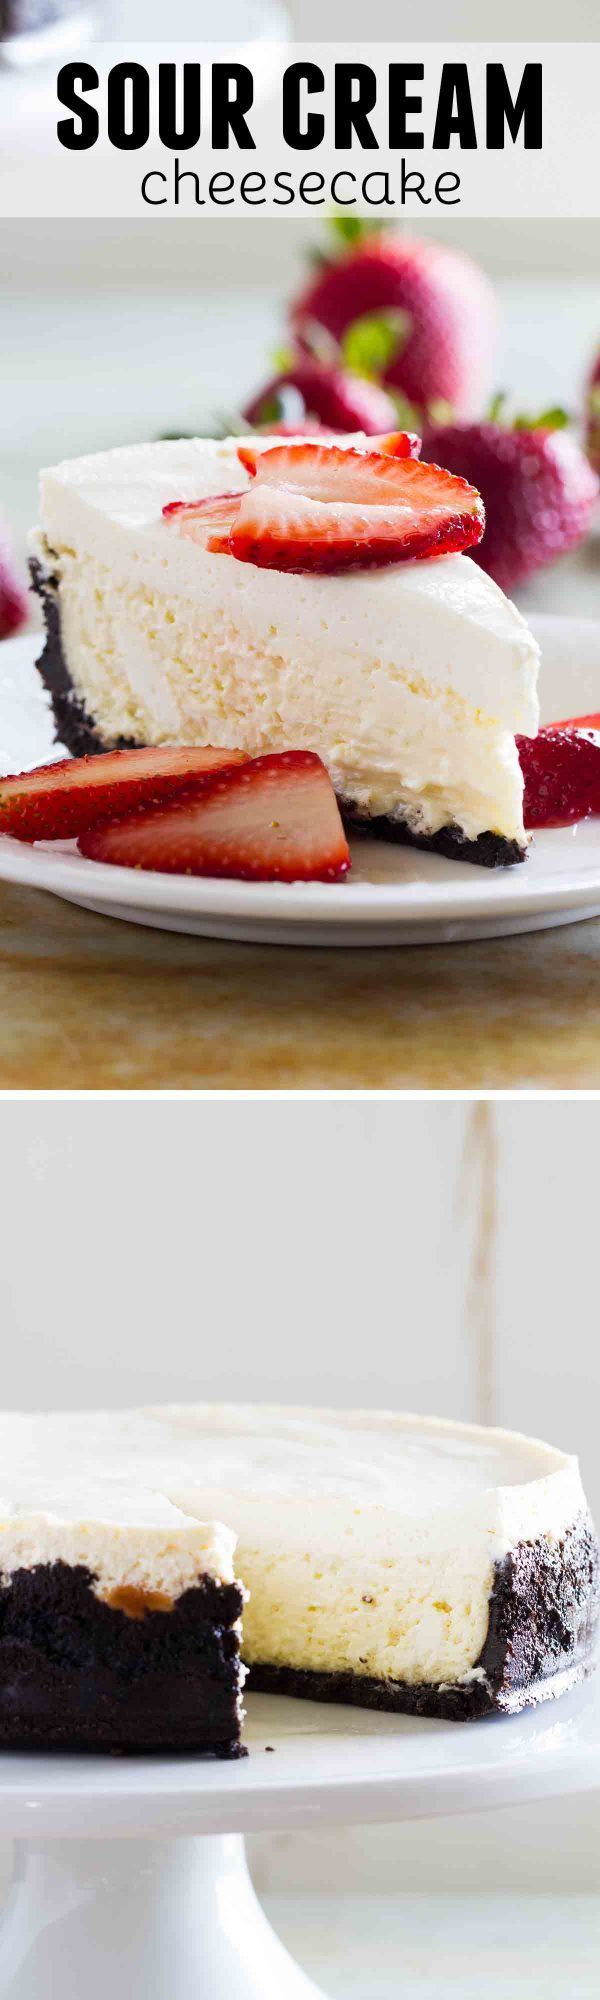 A rich, classic cheesecake is topped with a creamy, tangy sour cream layer. Add in a chocolate cookie crust and your favorite cheesecake toppings and this Sour Cream Cheesecake equals the perfect dessert!